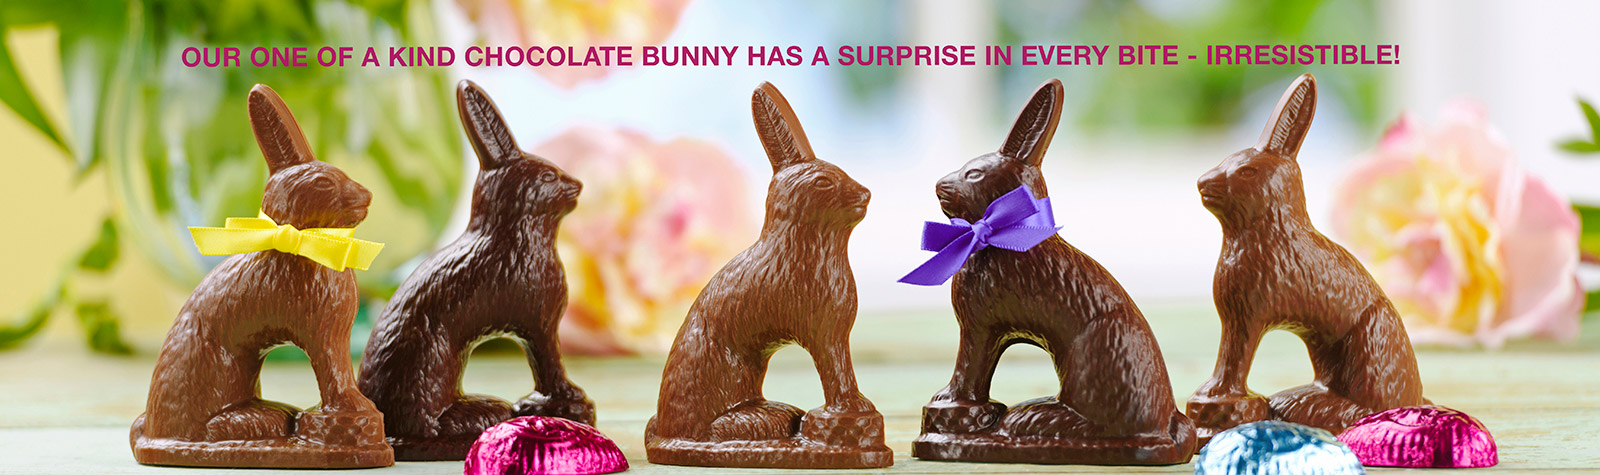 Famous Assorted Chocolate Rabbits